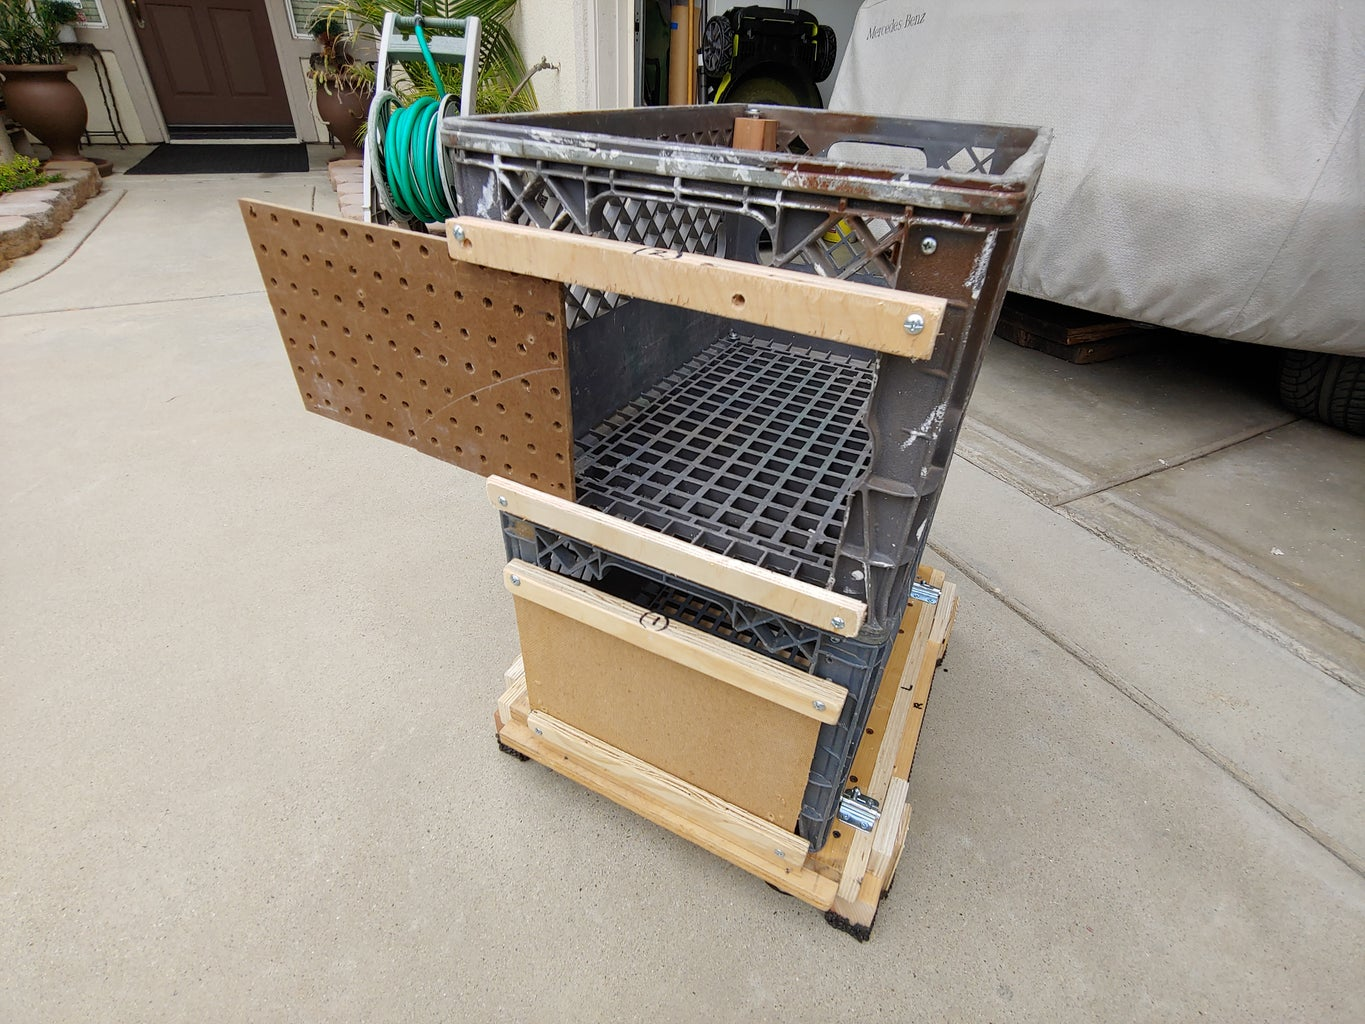 Middle Crate-